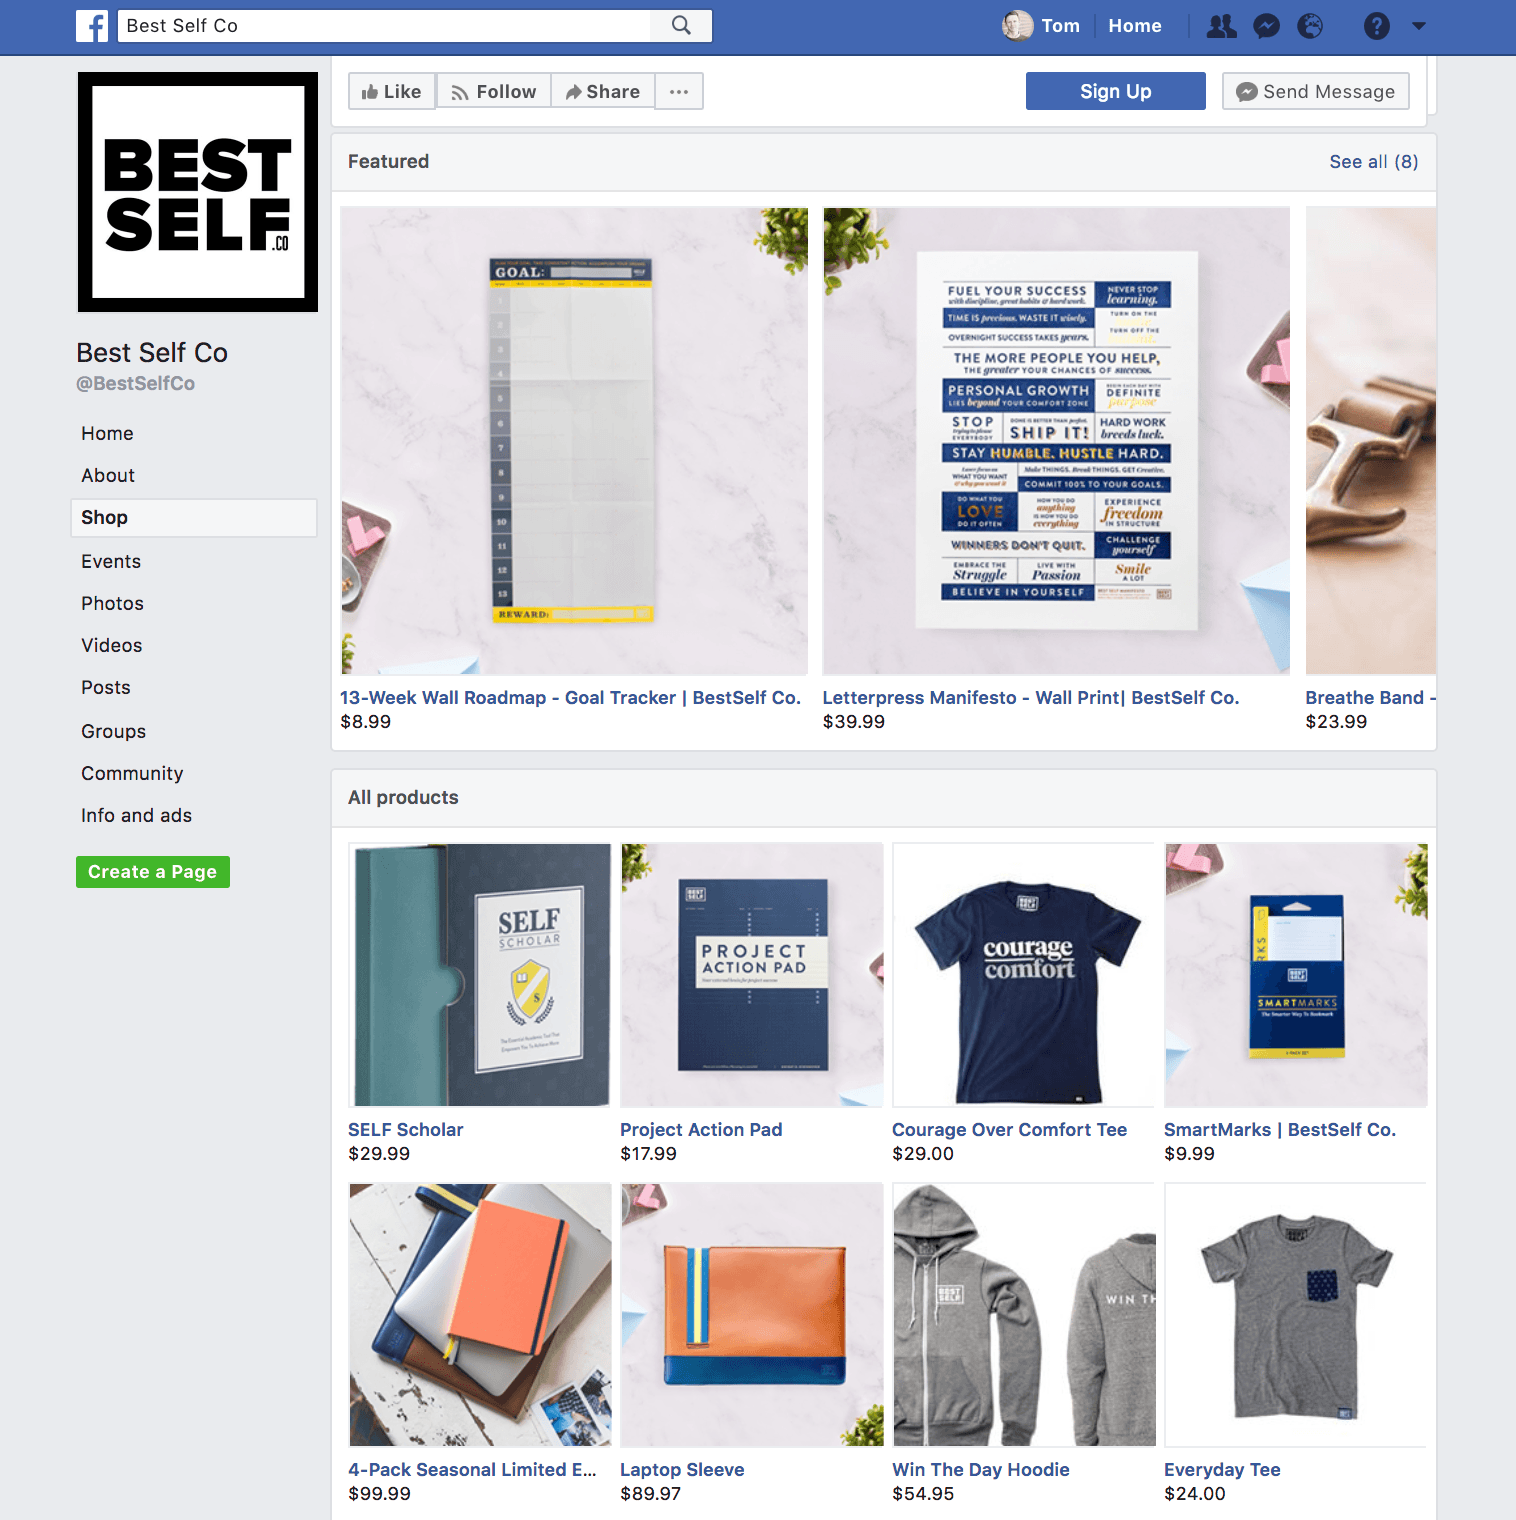 Come creare un Facebook Shop